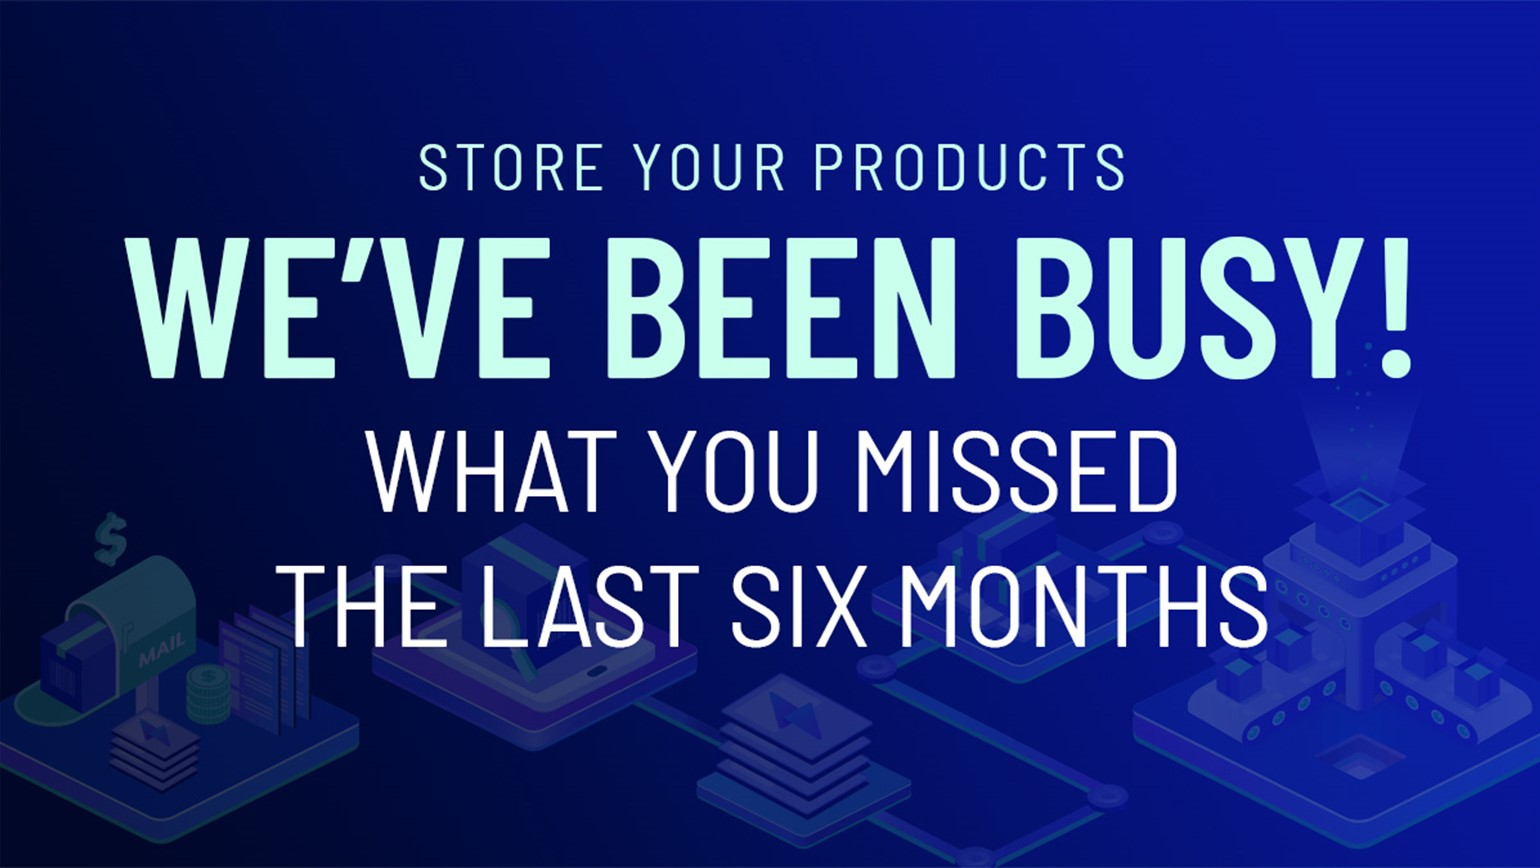 Store Your Products: We've Been Busy! Here's a 6 Month Recap